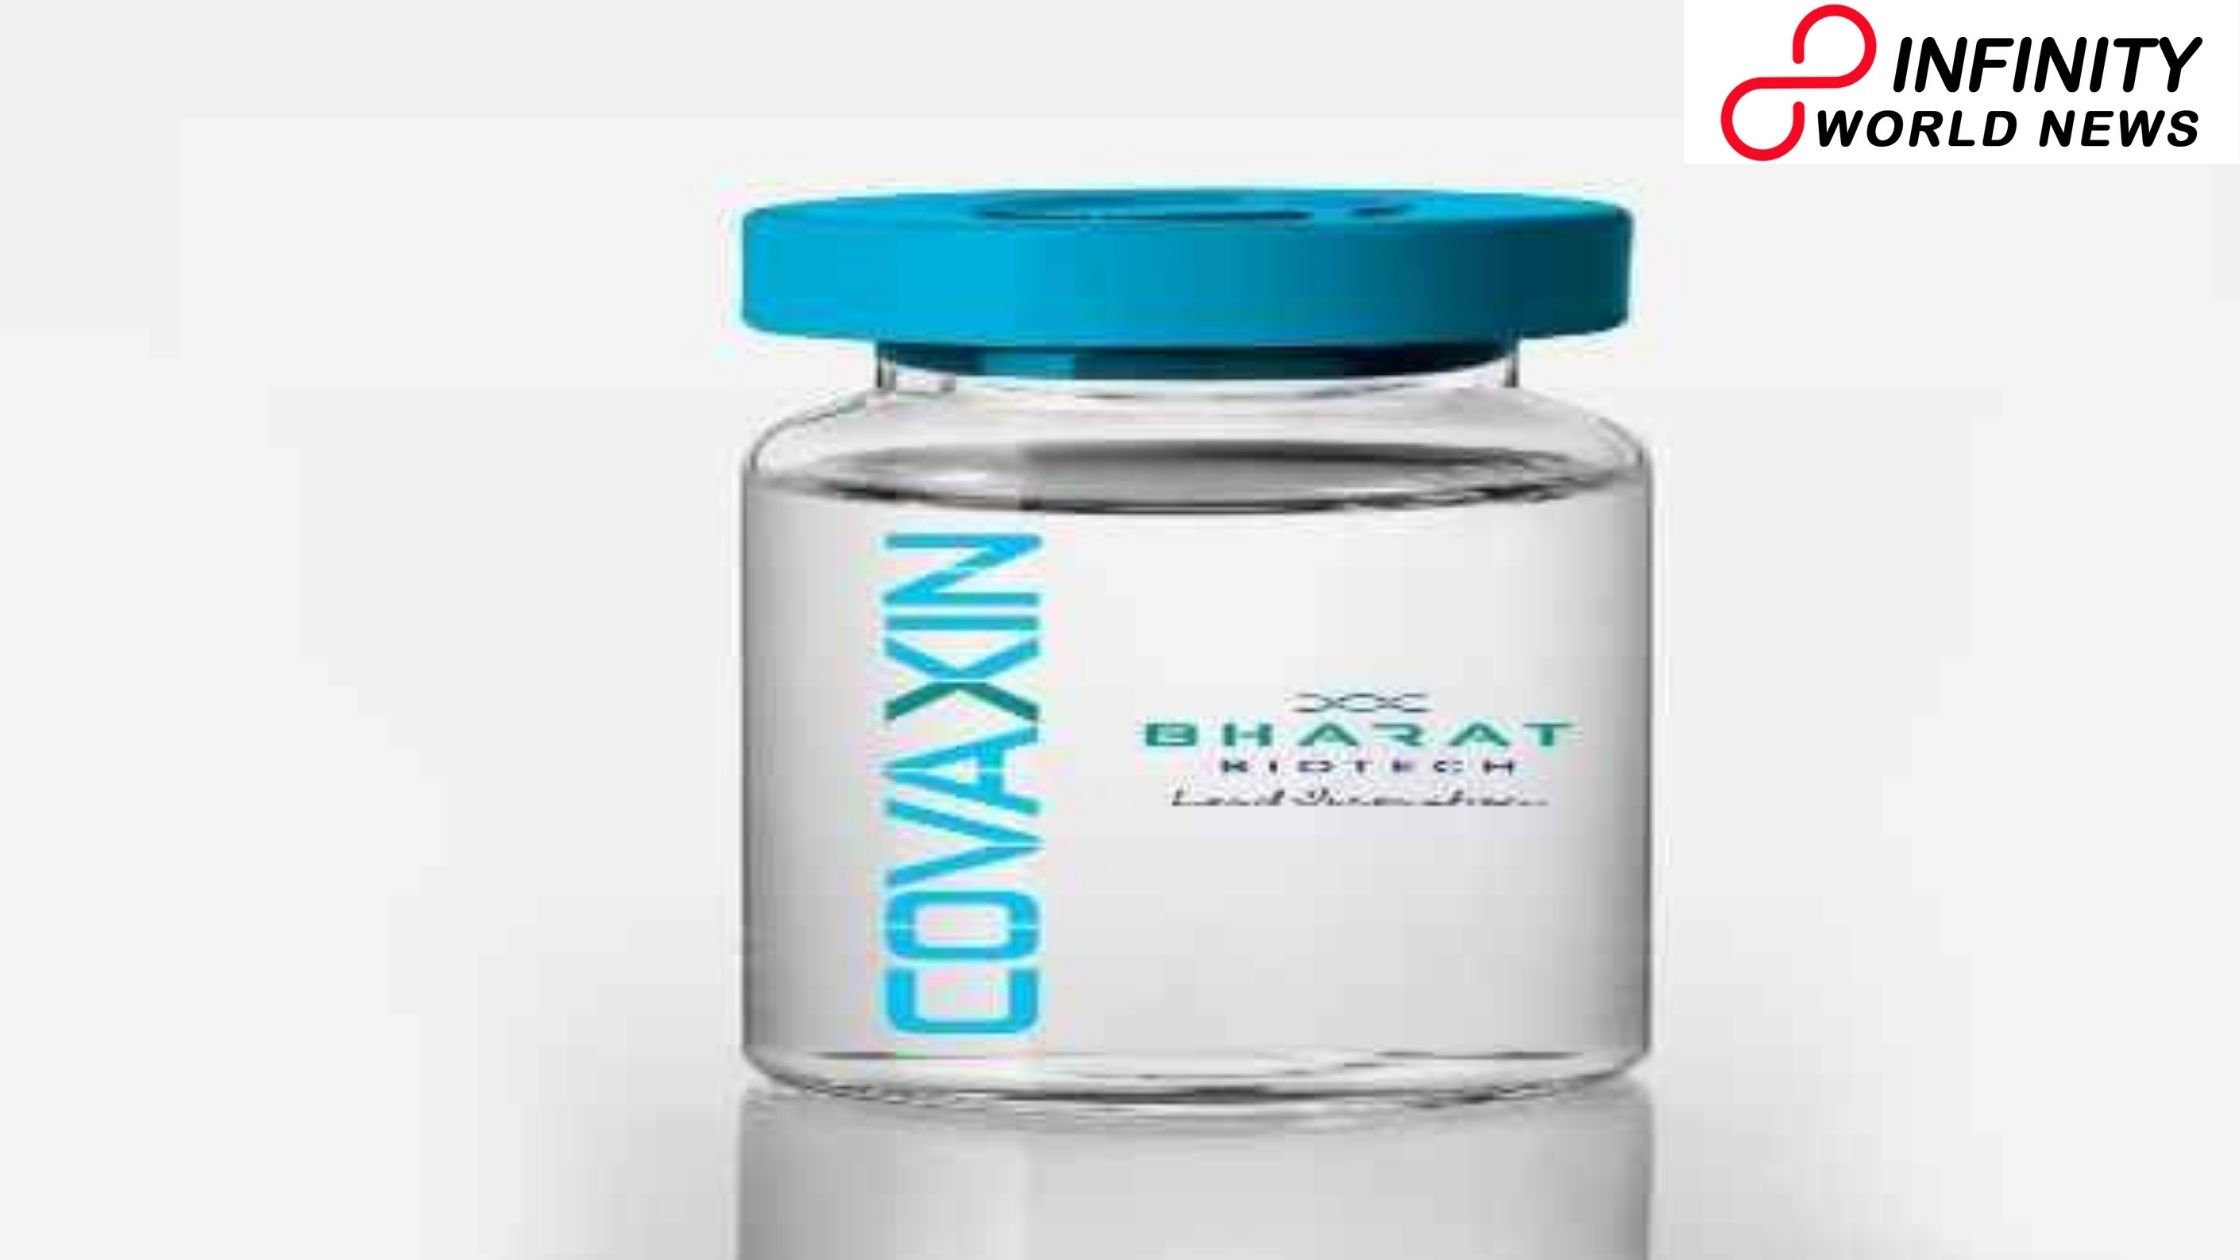 Coronavirus Vials for stage 3 preliminaries of Covaxin show up in Kolkata